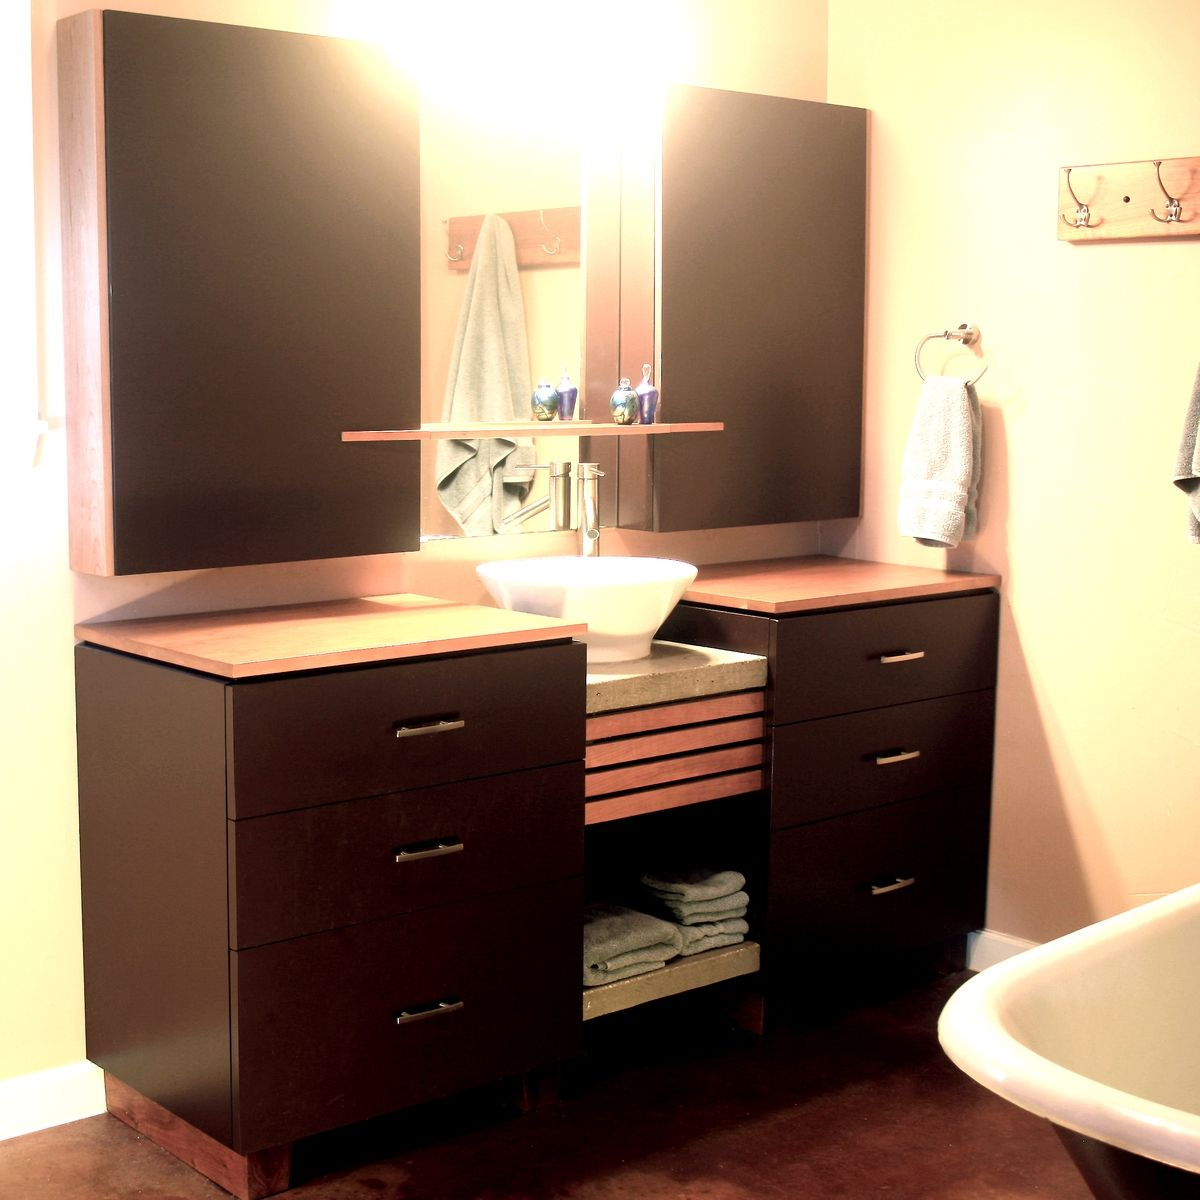 Custom Made Cabinets Hand Made Bathroom Cabinets By Mark Love Furniture